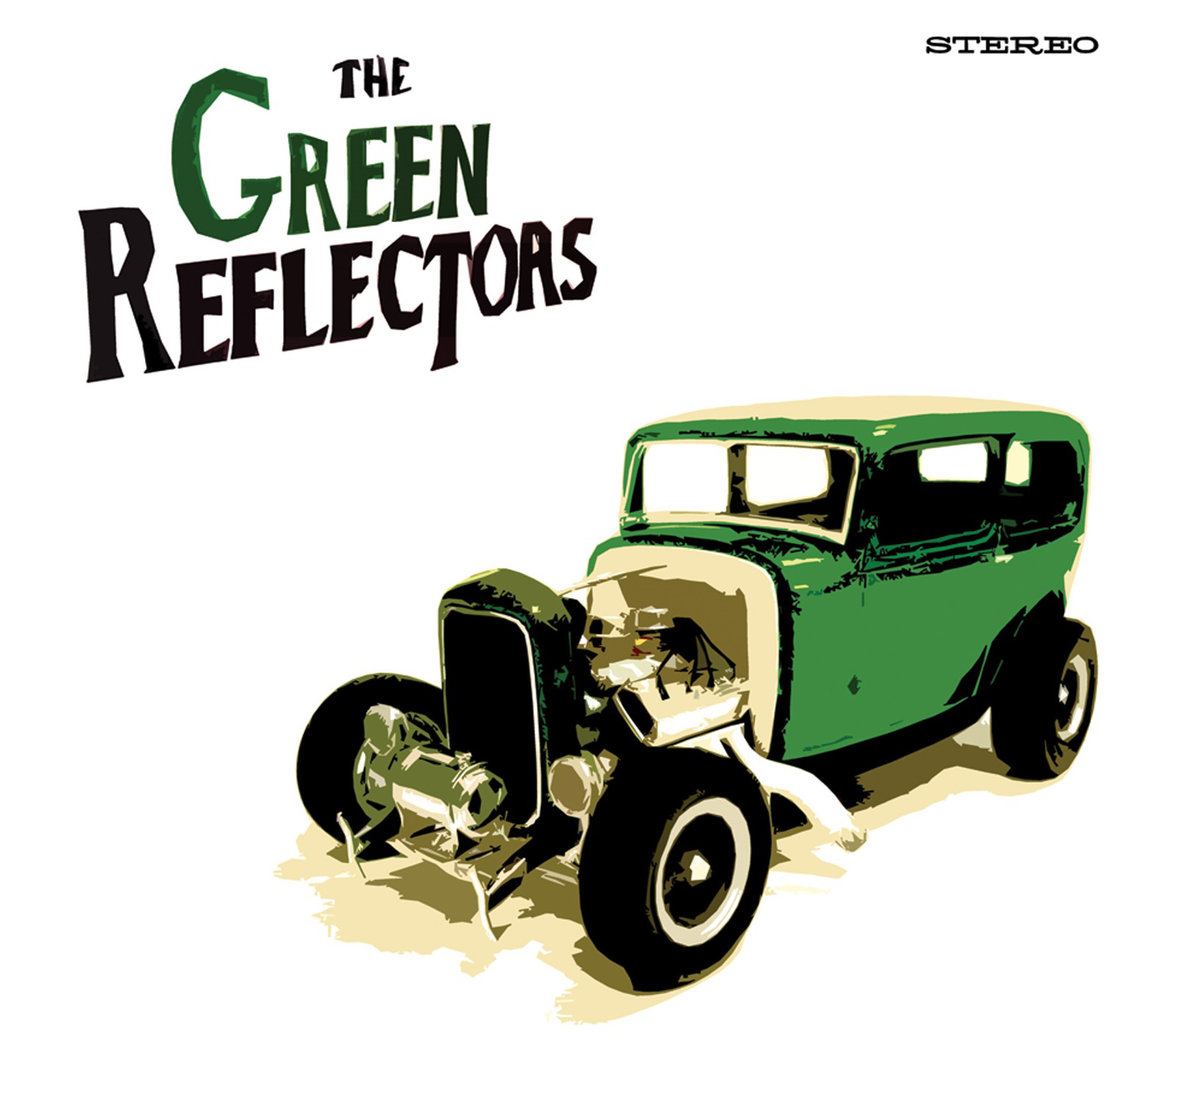 The Green Reflectors - The Green Reflectors